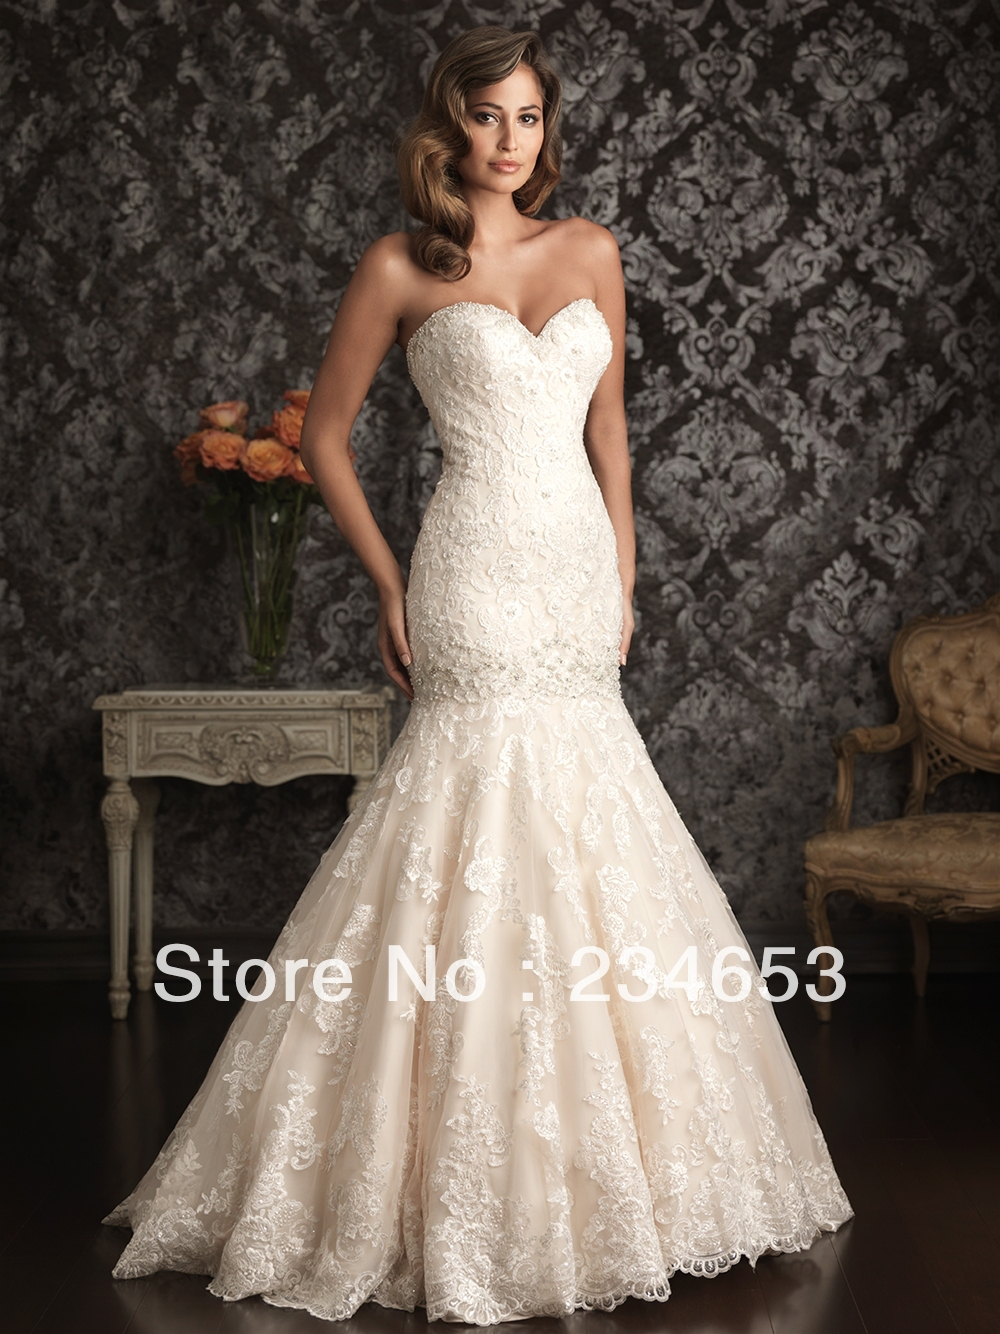 2014 Sweetheart Lace Appliques Fitted Mermaid Wedding Dresses With Dropped Wa